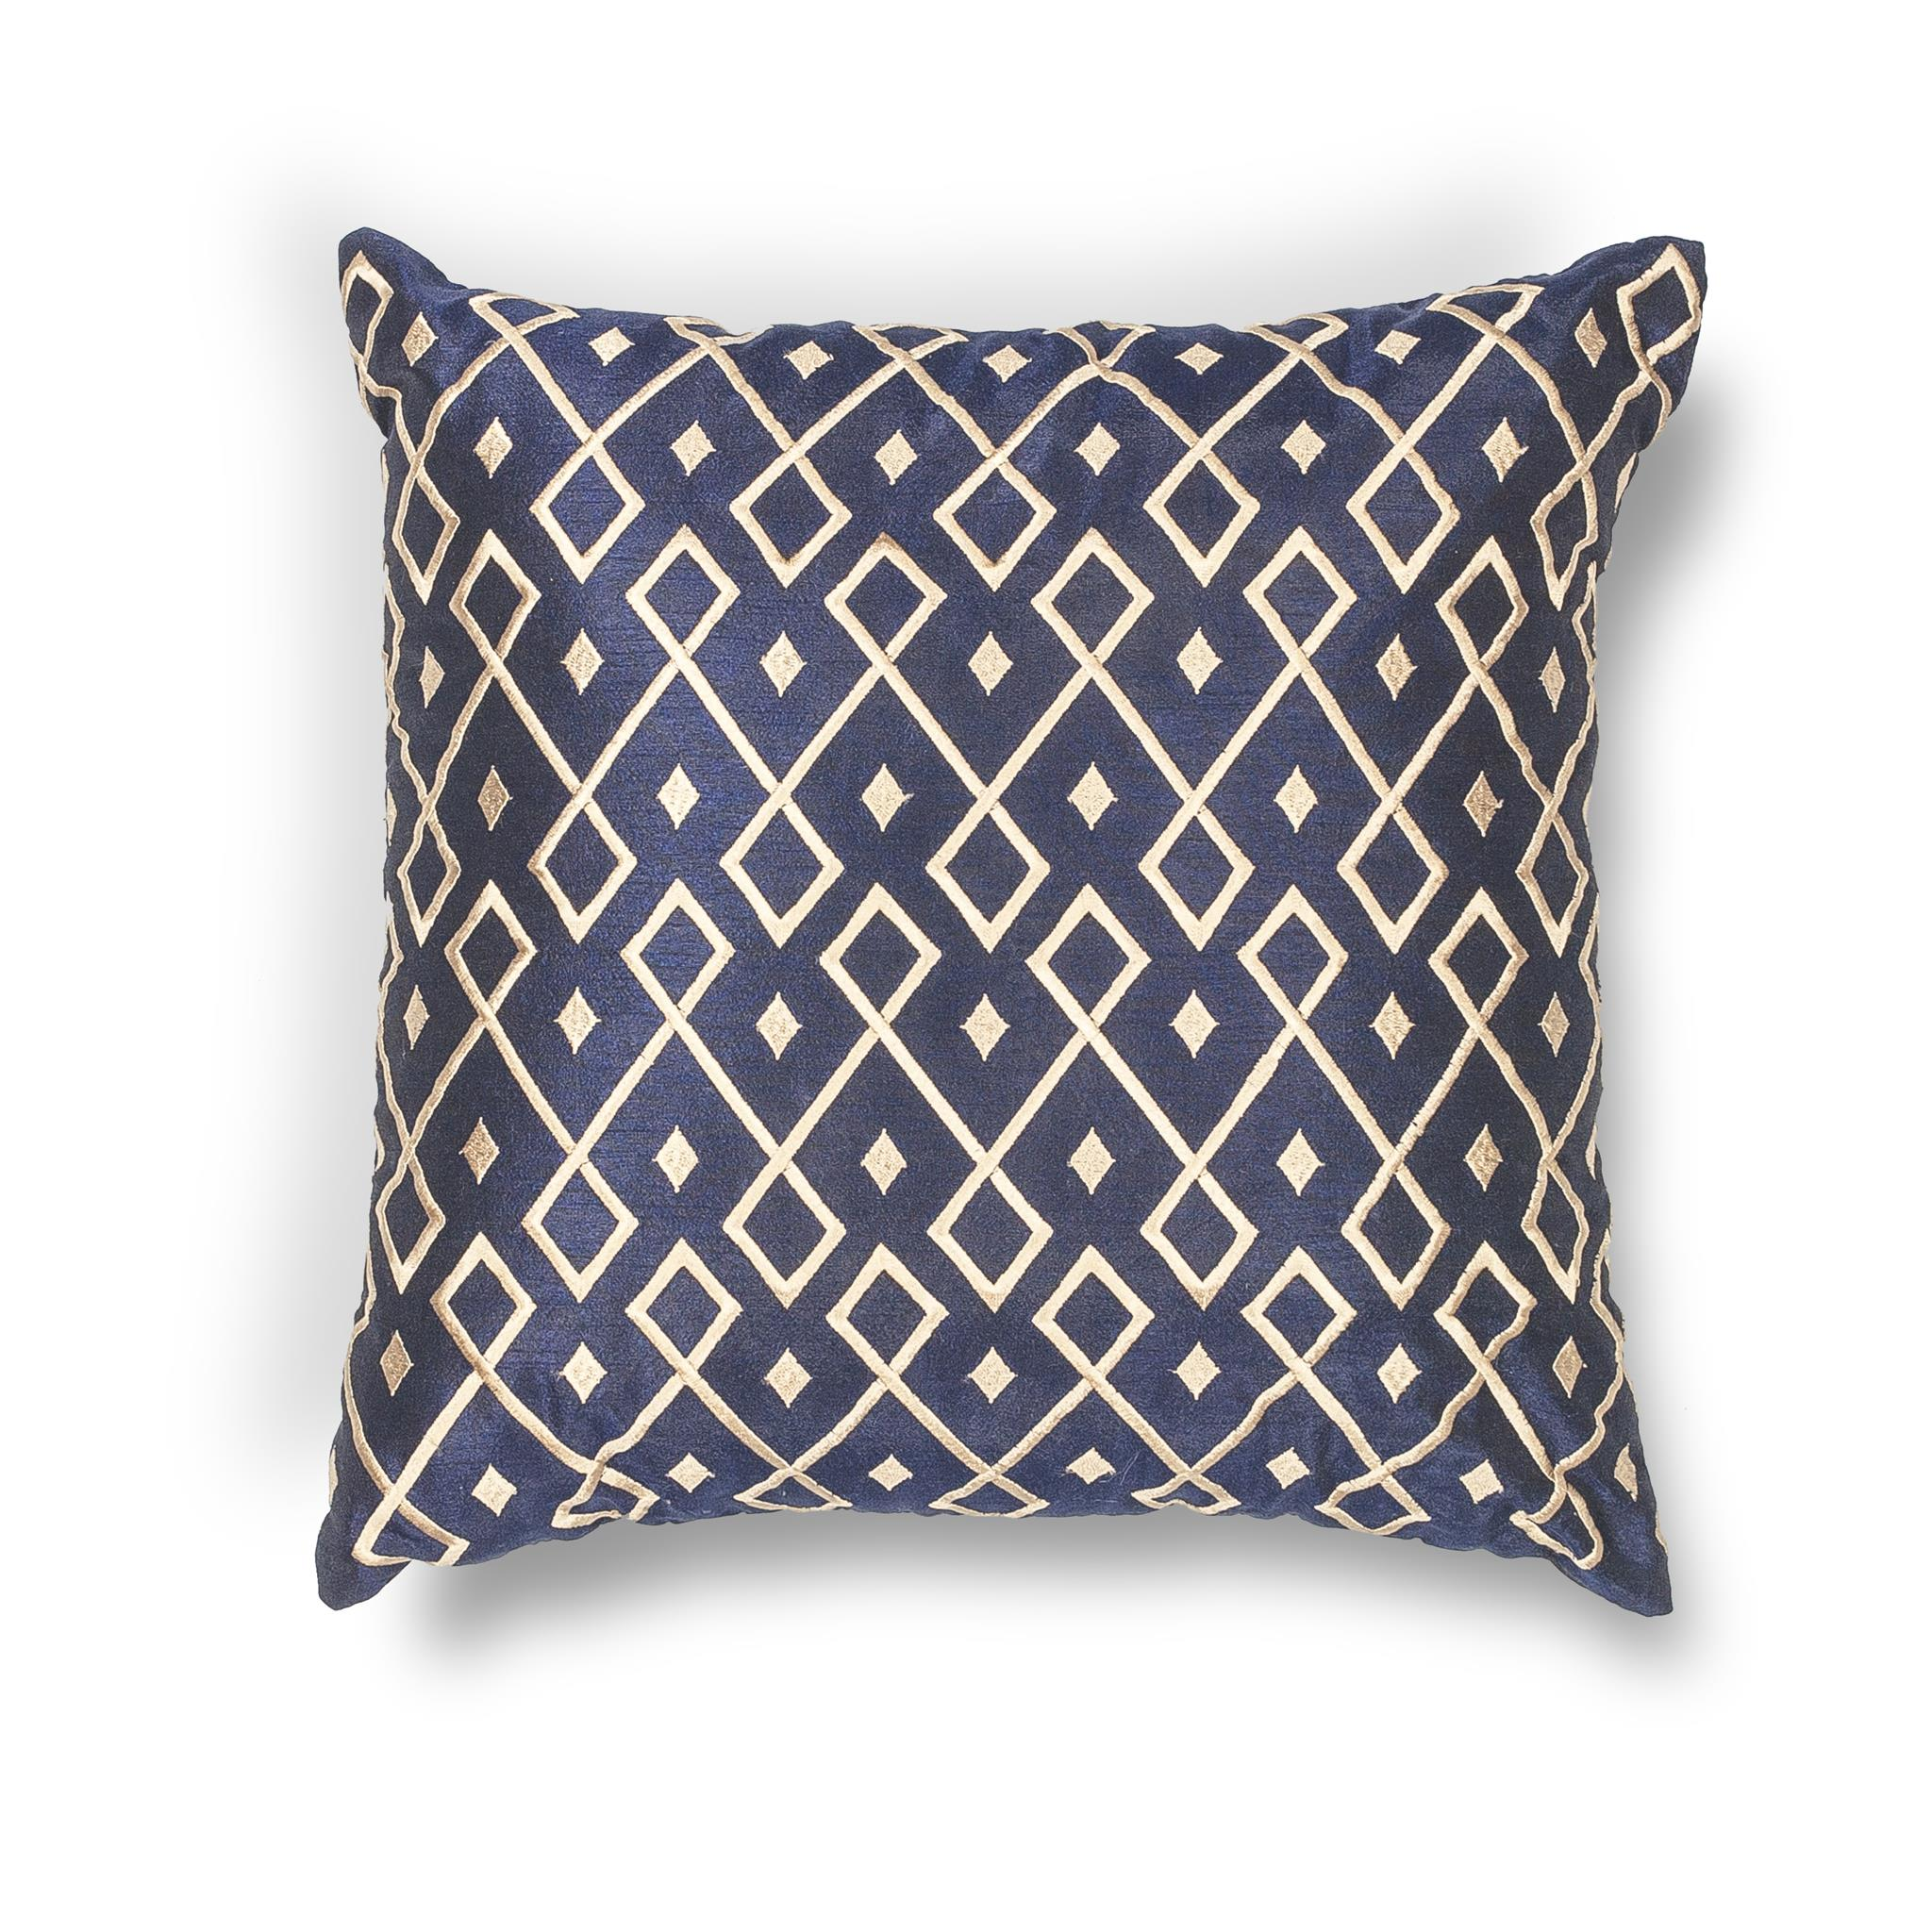 L203 Donny Osmond Home Gold-Navy Diamonds Pillow